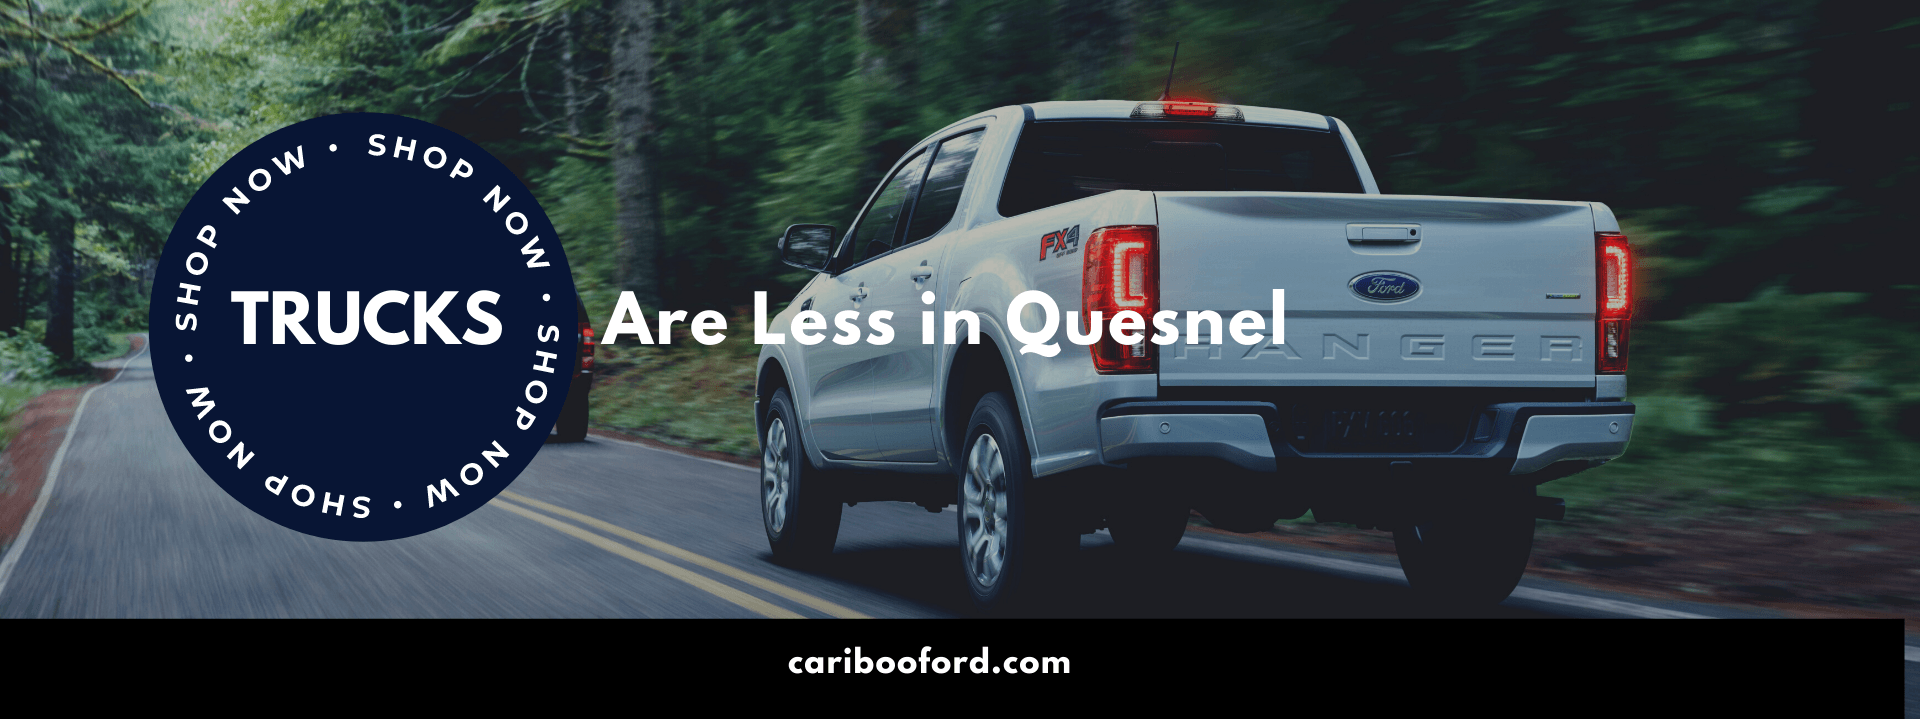 Trucks are Less in Quesnel